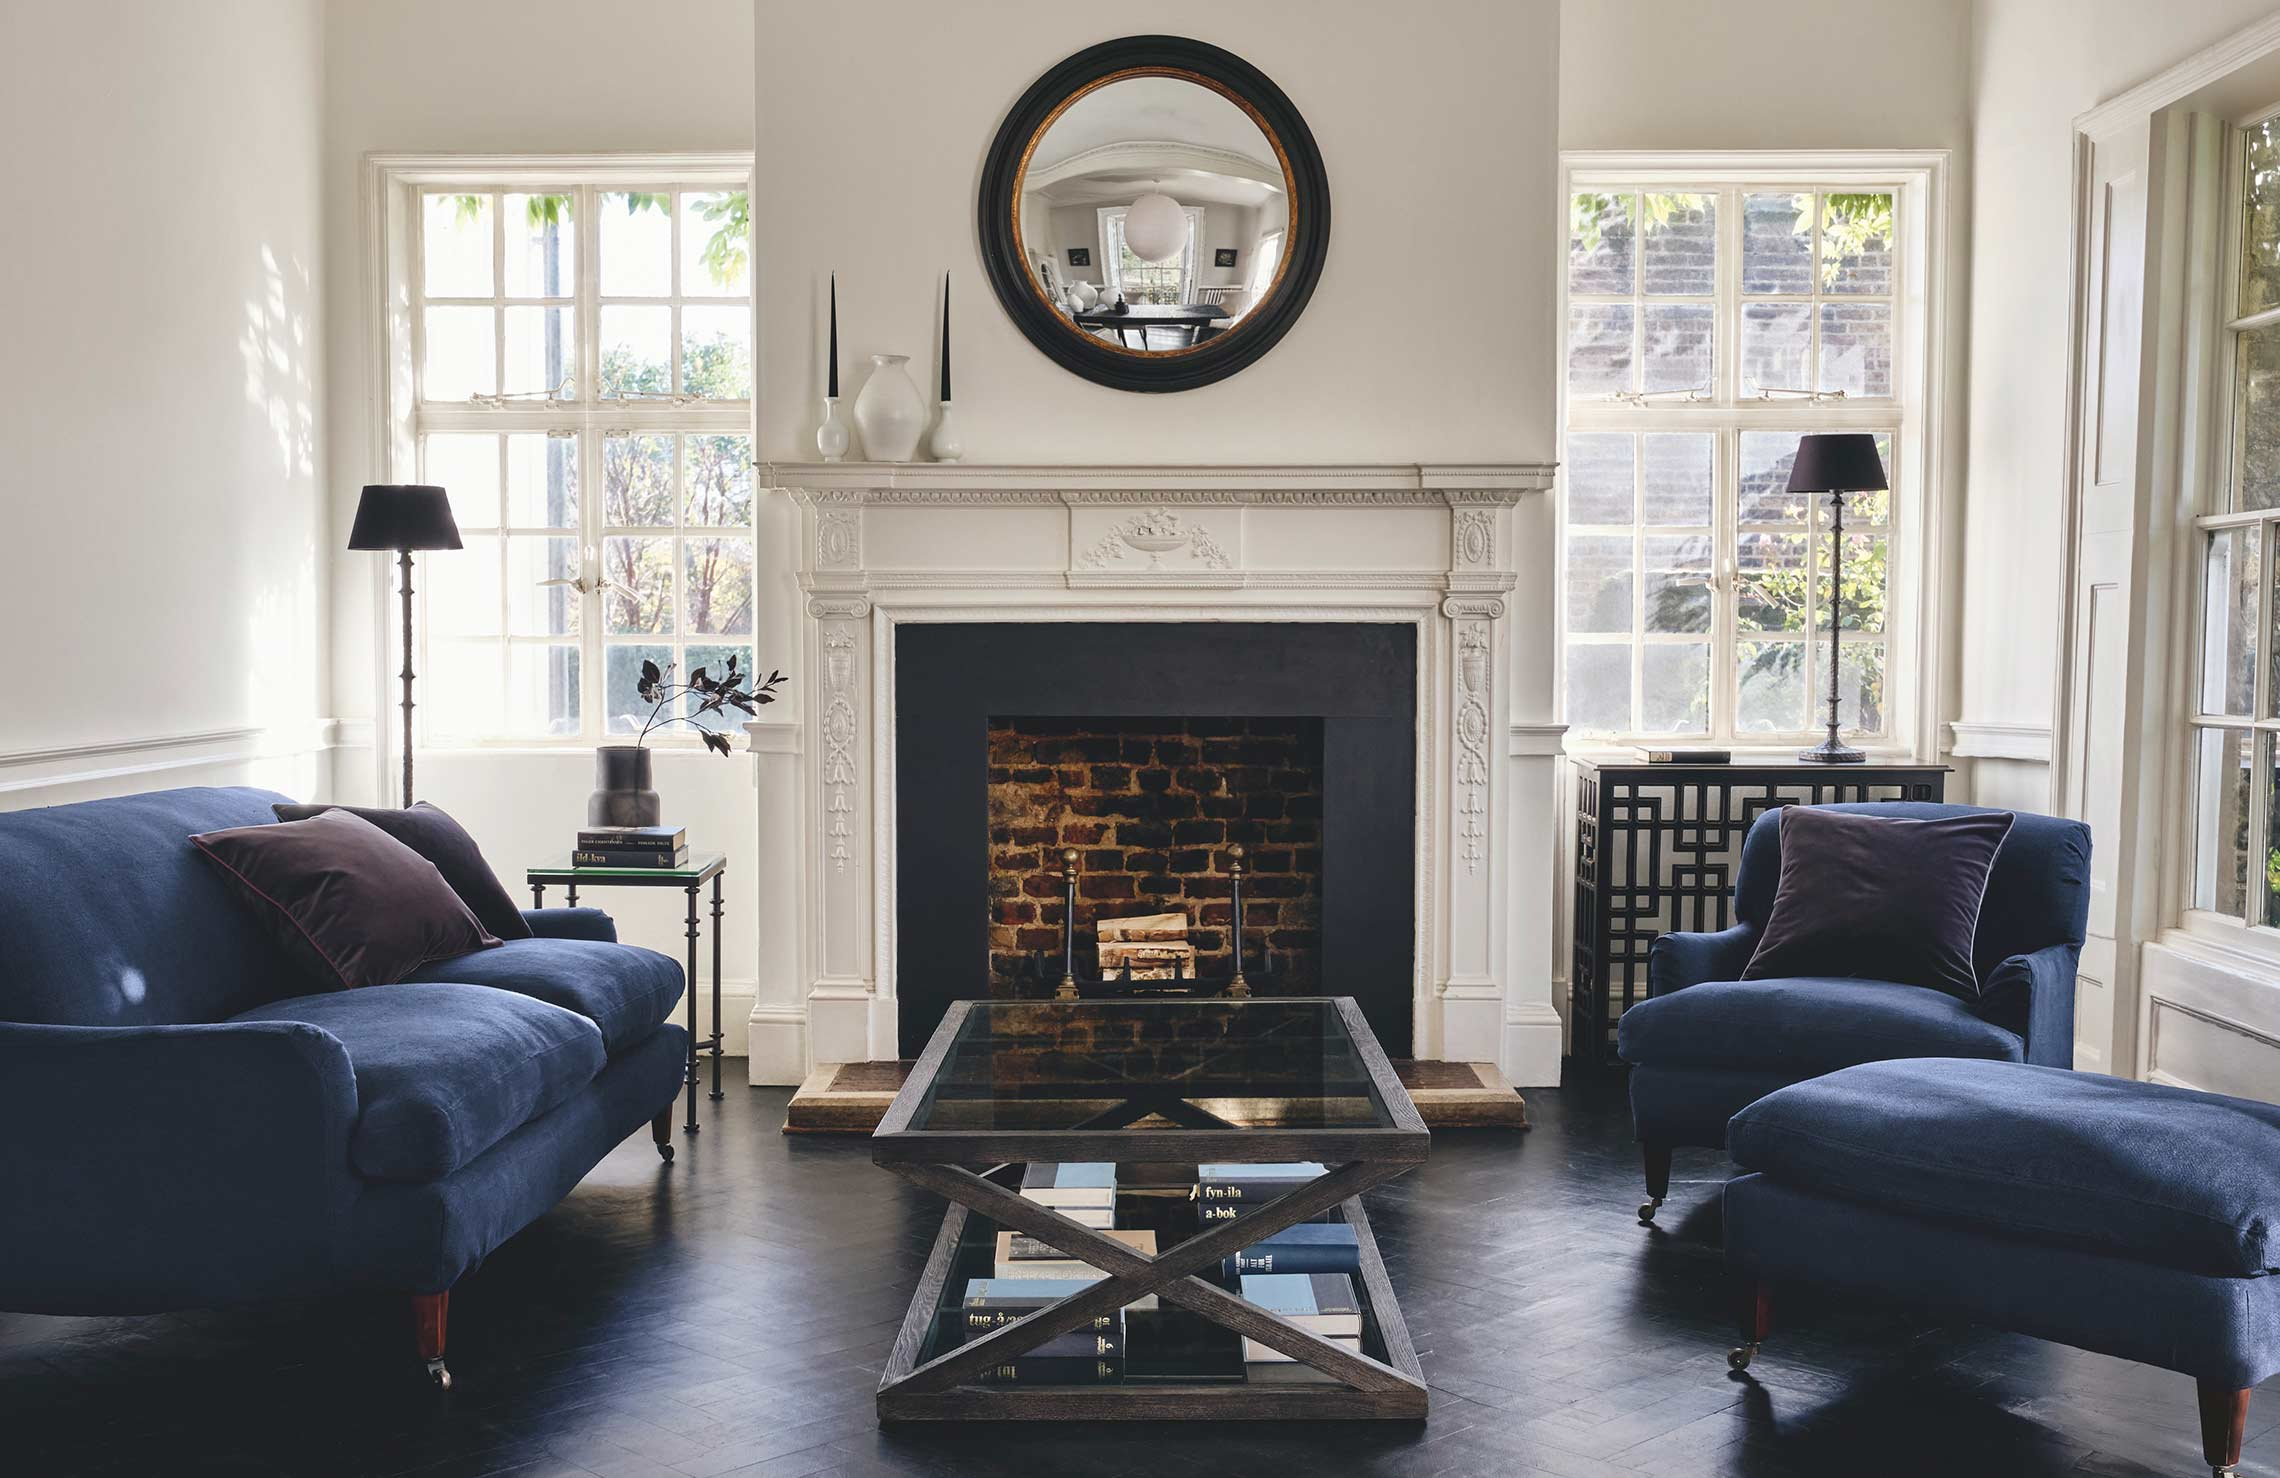 Top design tips for mirrors